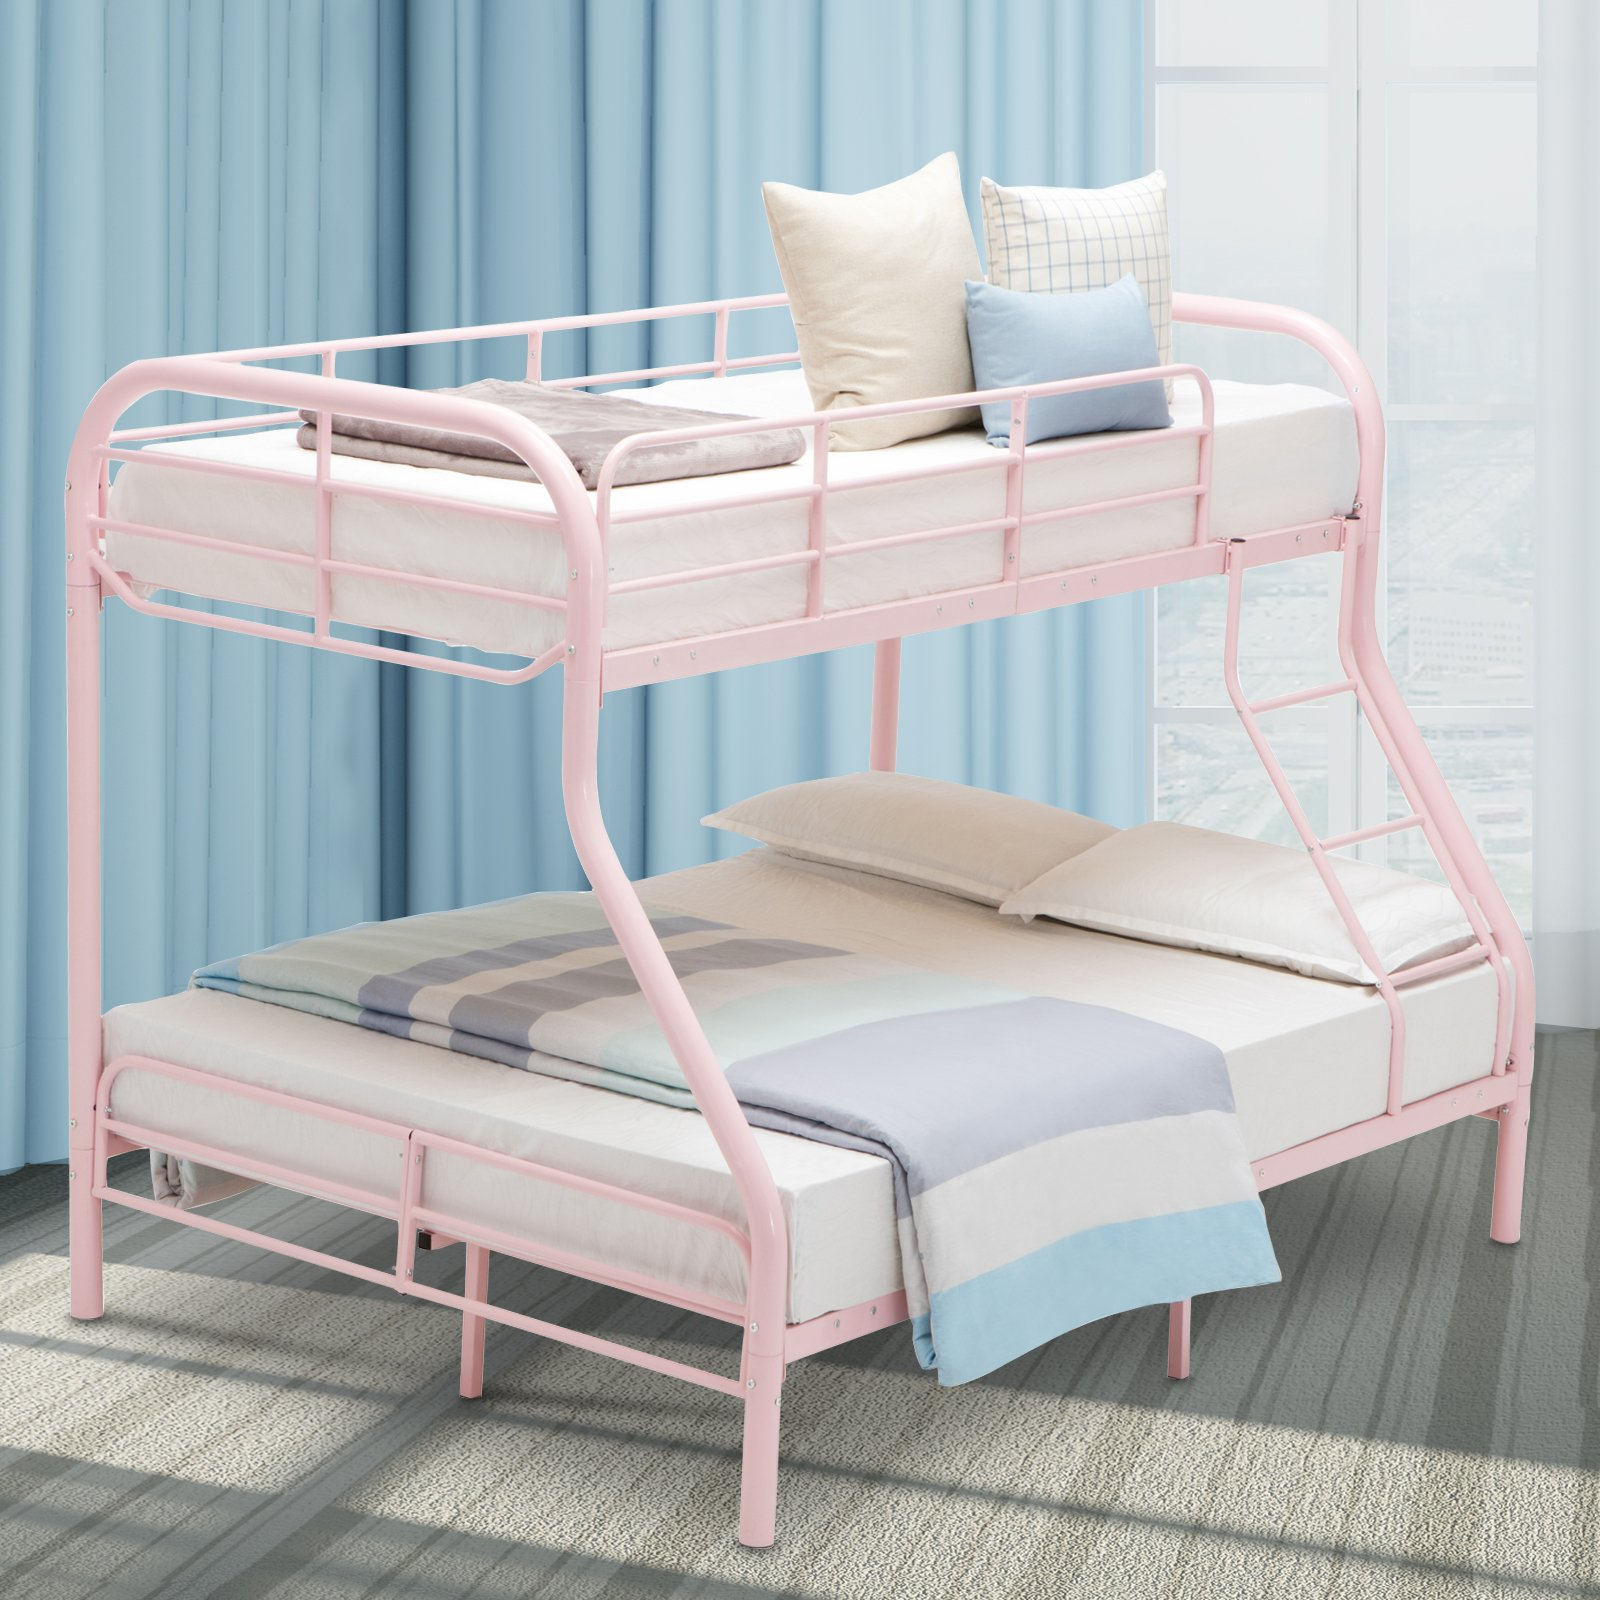 Lagrima Twin Over Full Metal Sturdy Bunk Bed Frame With Inclined Ladder Safety Rails For Kids Teens Adult Space Saving Design Pink Buy Online In Aruba At Aruba Desertcart Com Productid 99758562